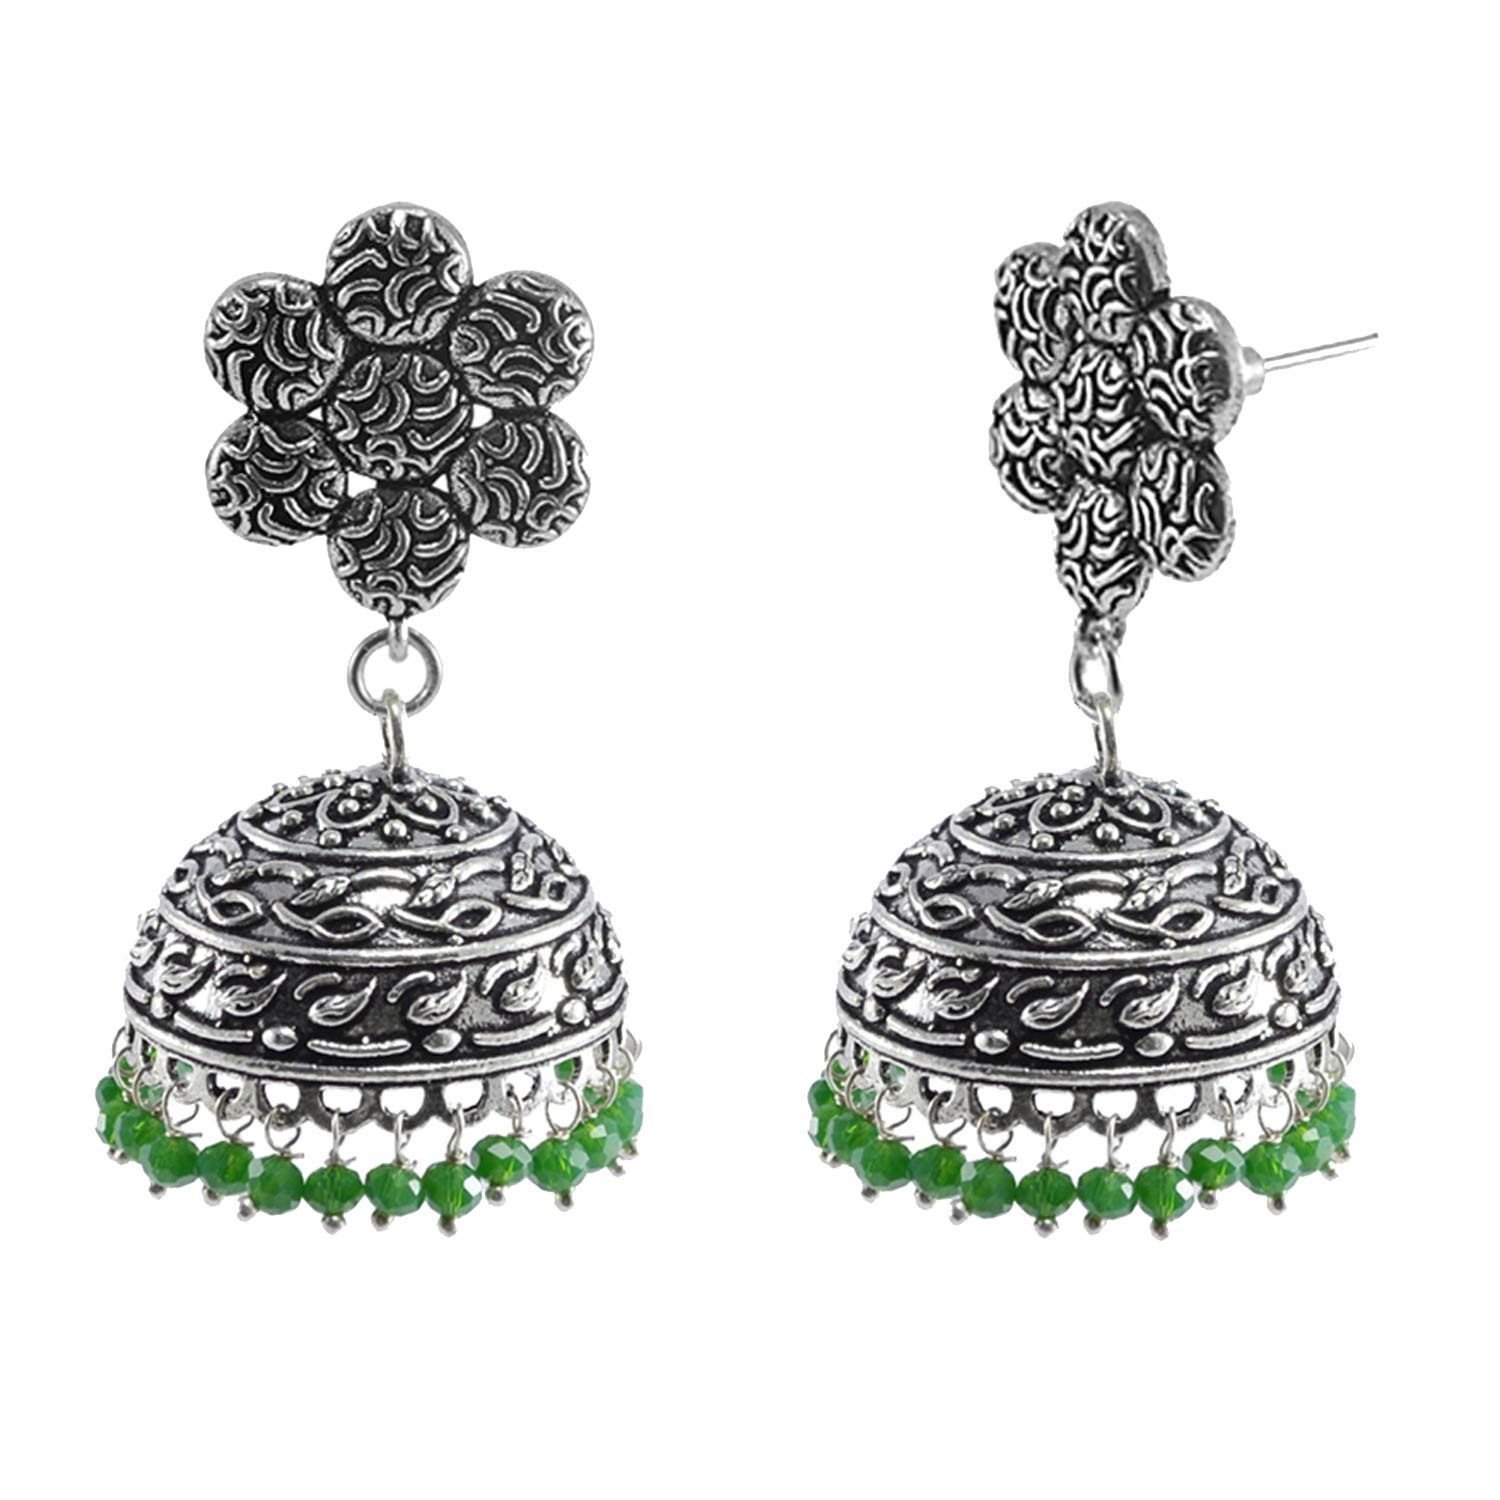 Silvesto India Jaipur Traditional Oxidized Silver Beautiful Color Fashion Handmade Drop Earring And Flower Jhumki With Small Green Crystals PG-111085